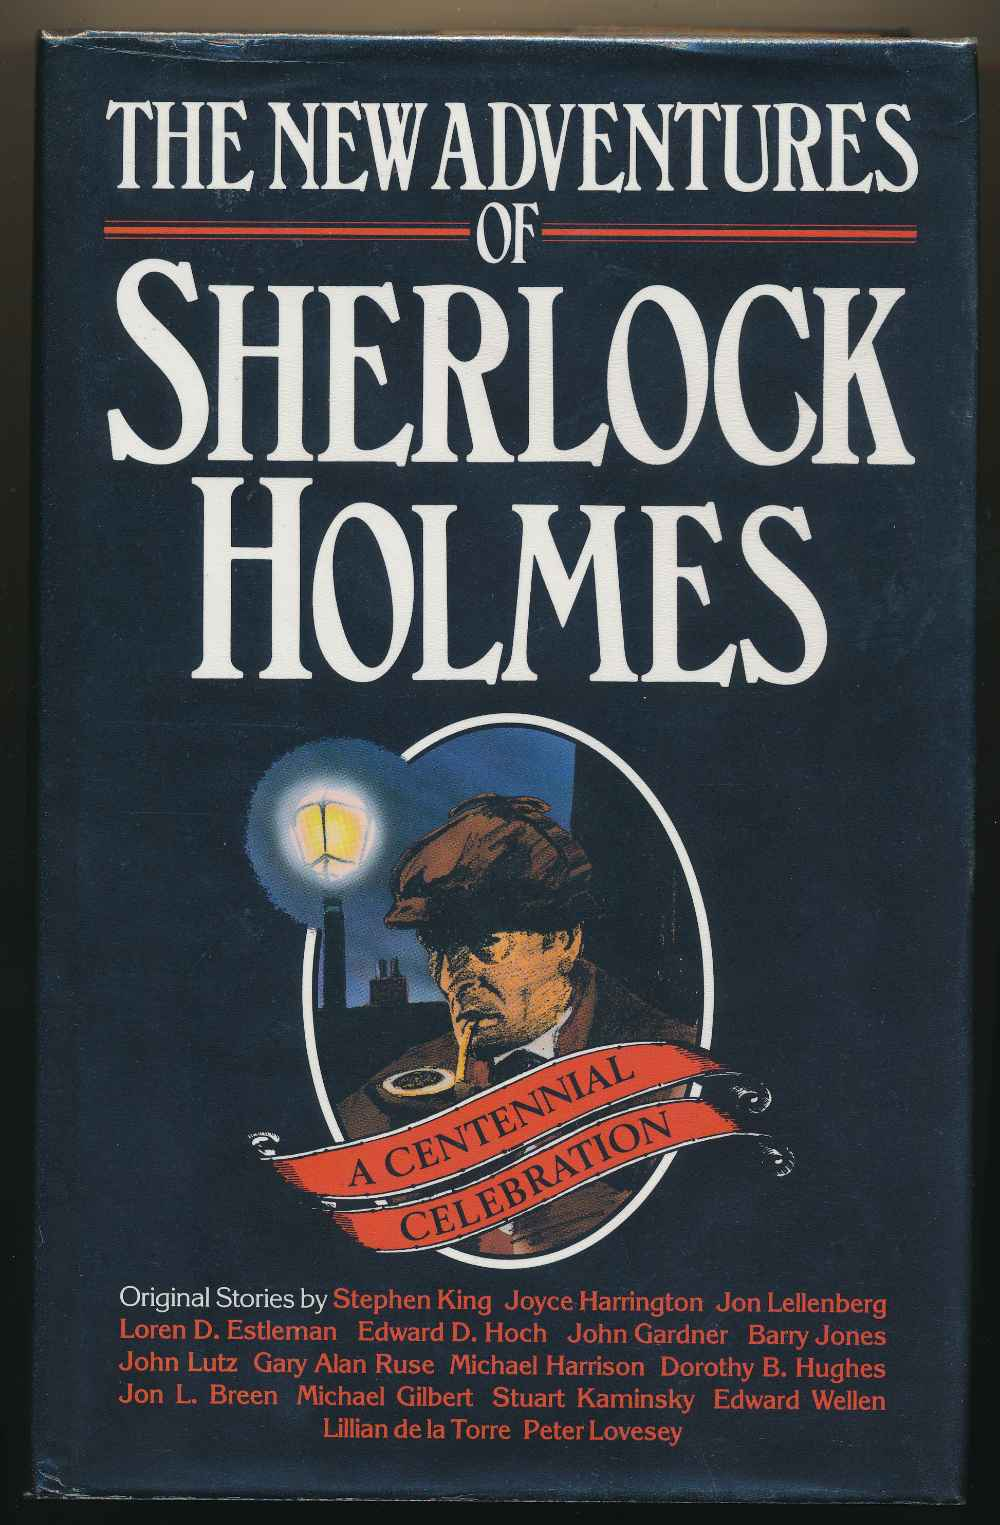 The new adventures of Sherlock Holmes : original stories by eminent mystery writers